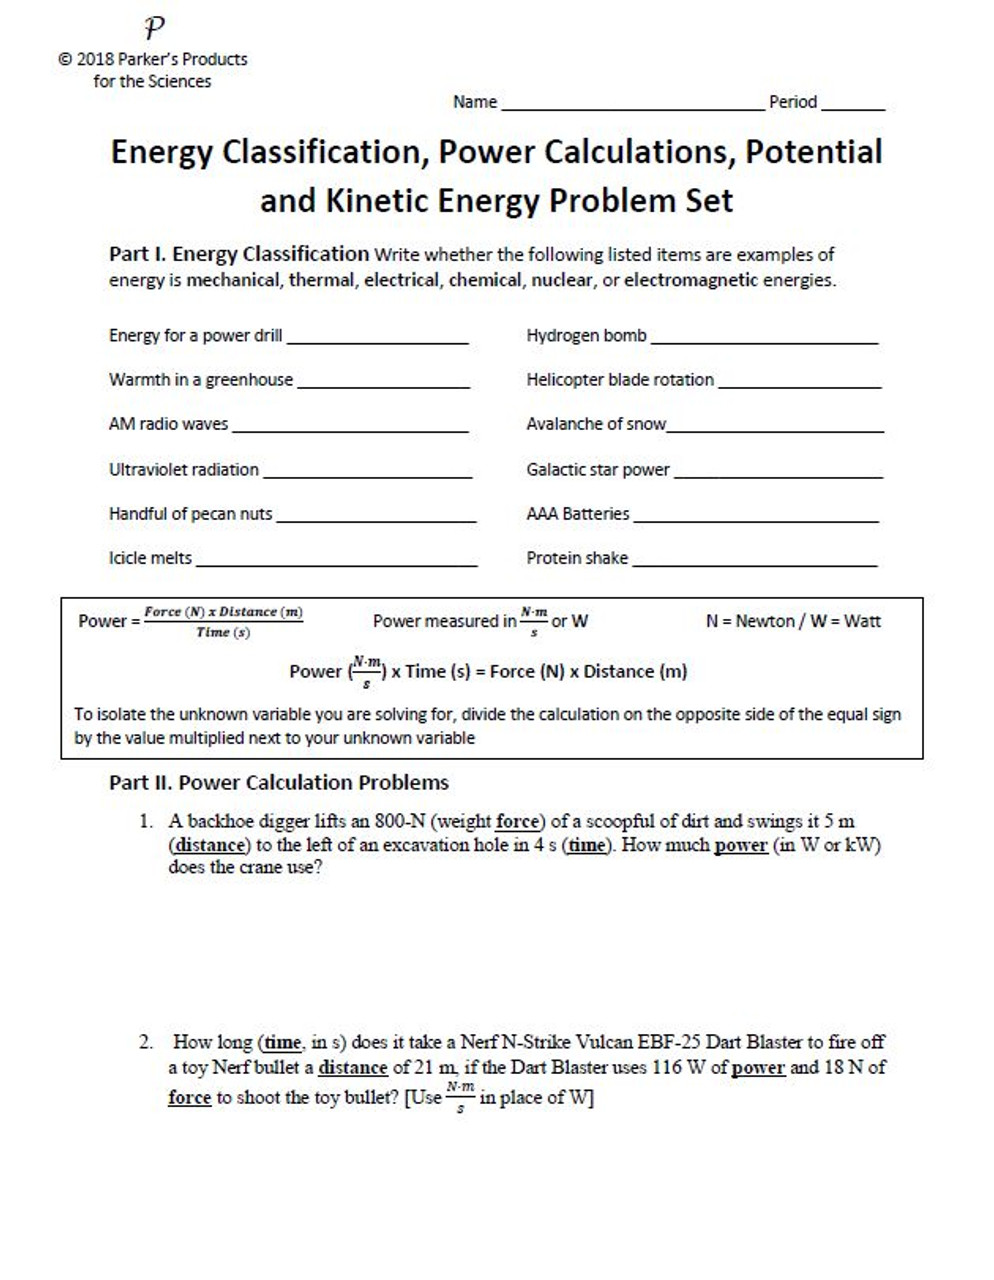 Energy and Power Unit Study Guide (Energy Classification and Power, Potential and Kinetic Energy Problems)